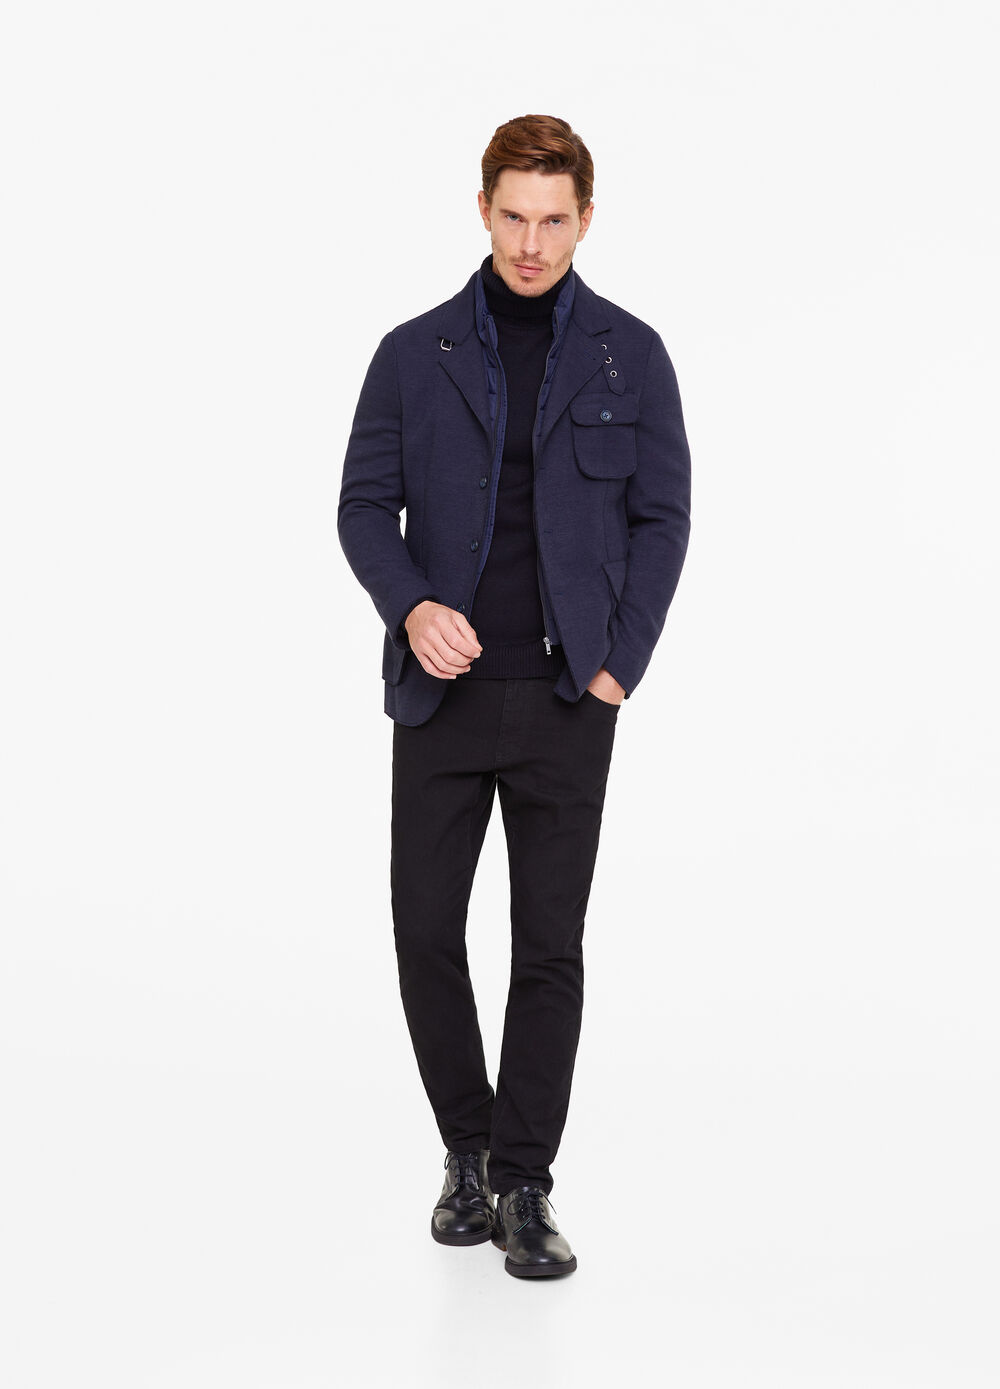 Three-button solid colour caban jacket